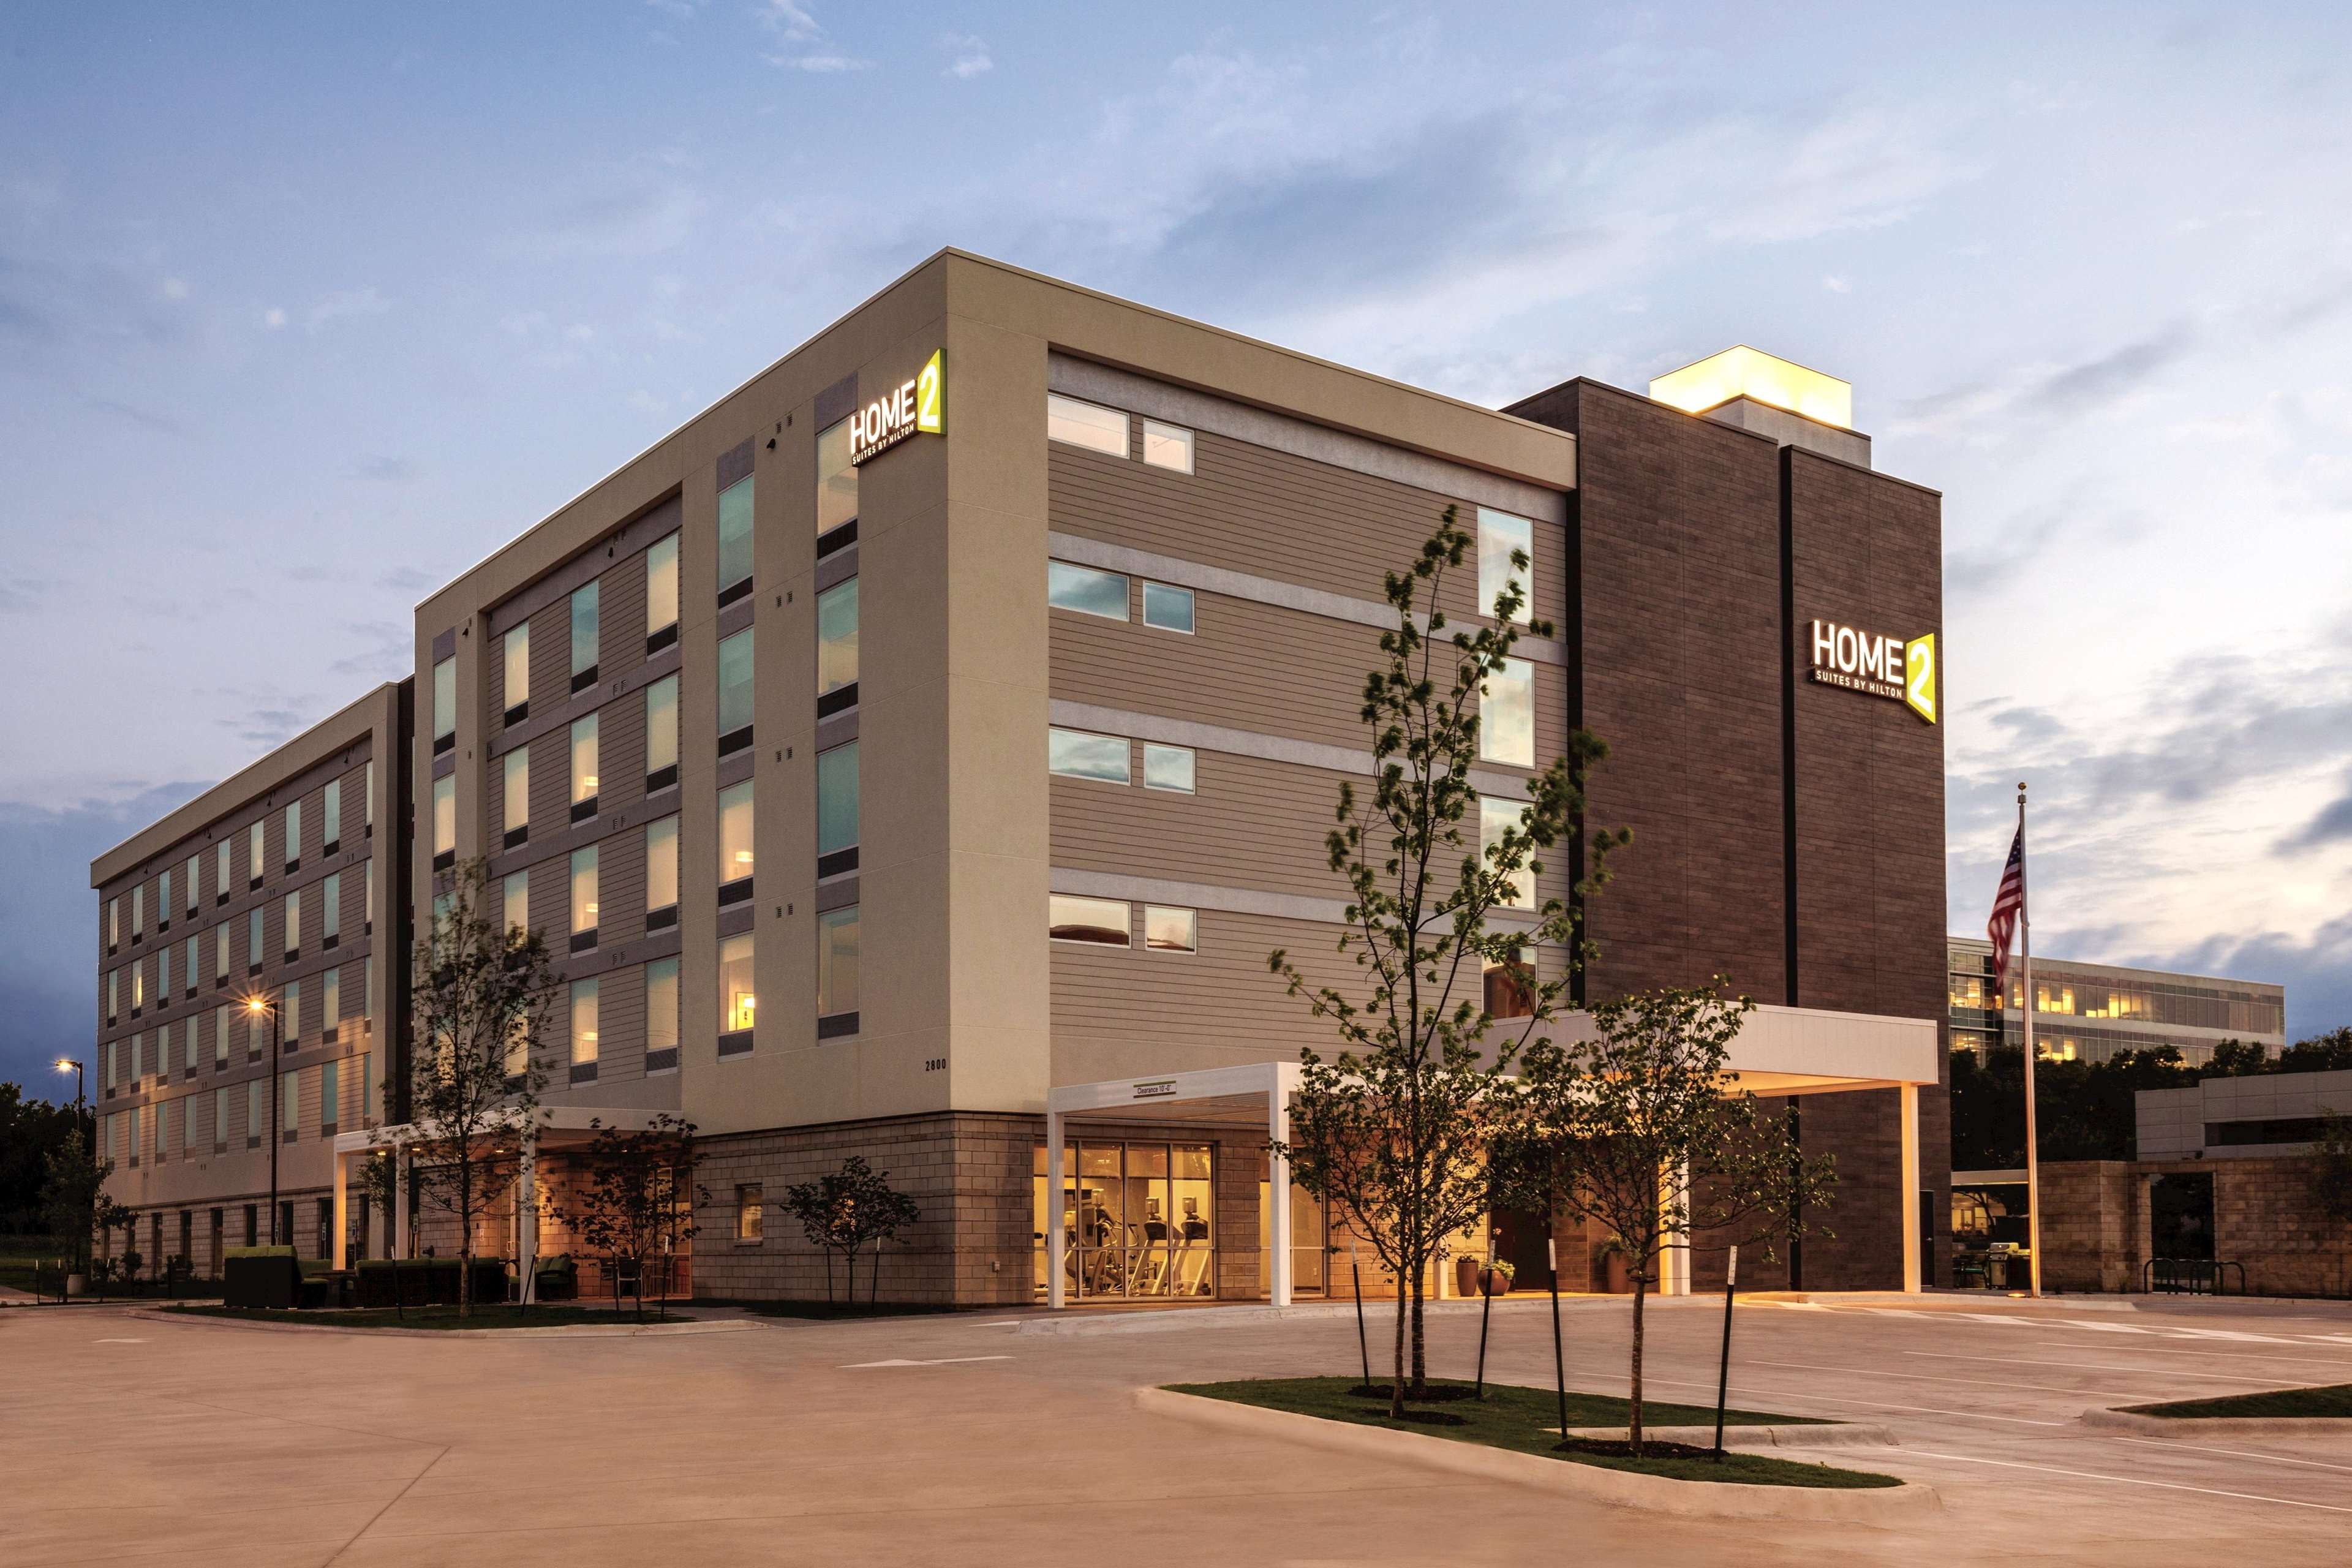 Hotels business in Austin, TX, United States